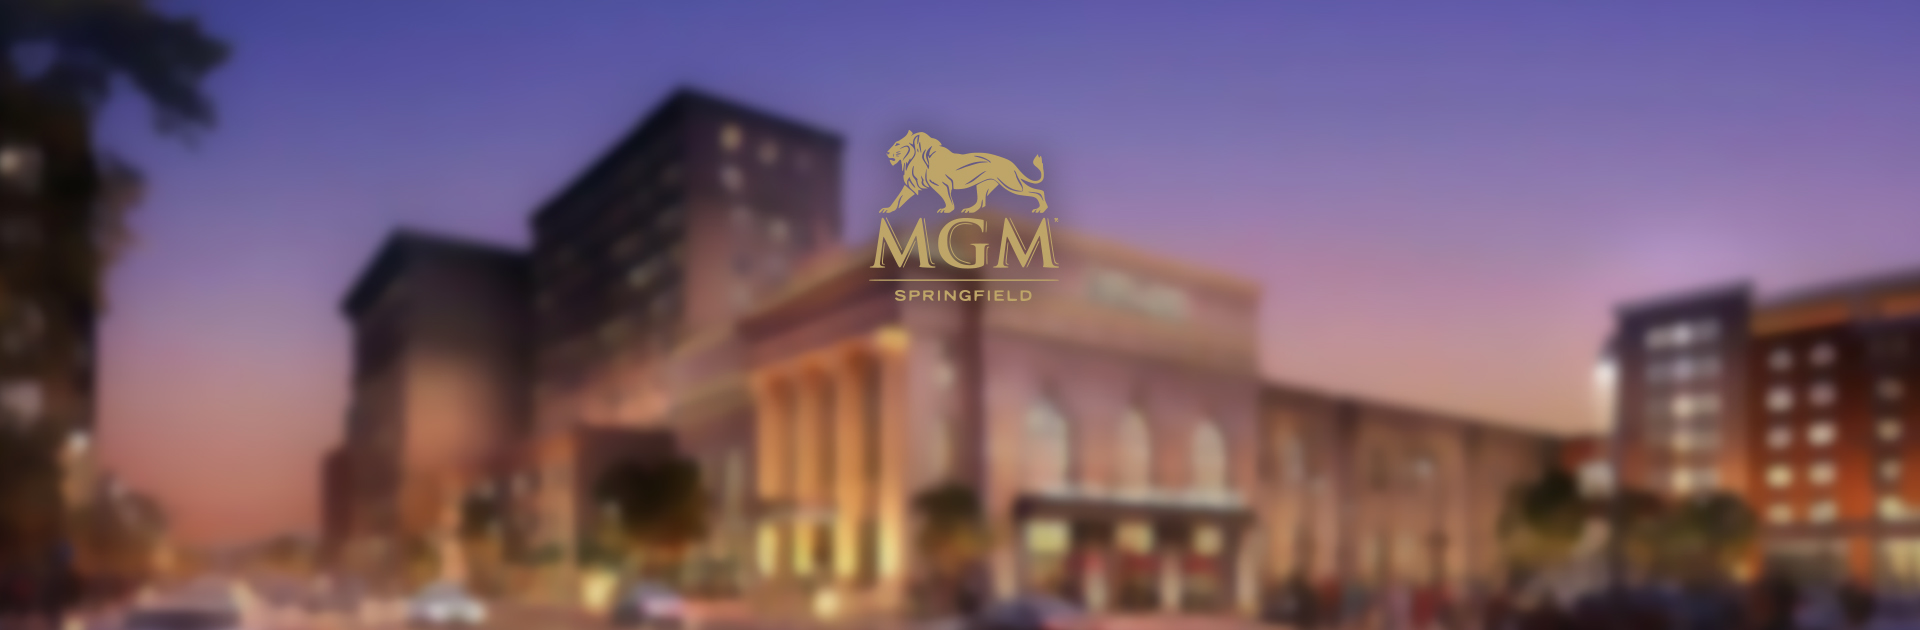 Moya Design Partners Among Initial Designers for MGM Springfield